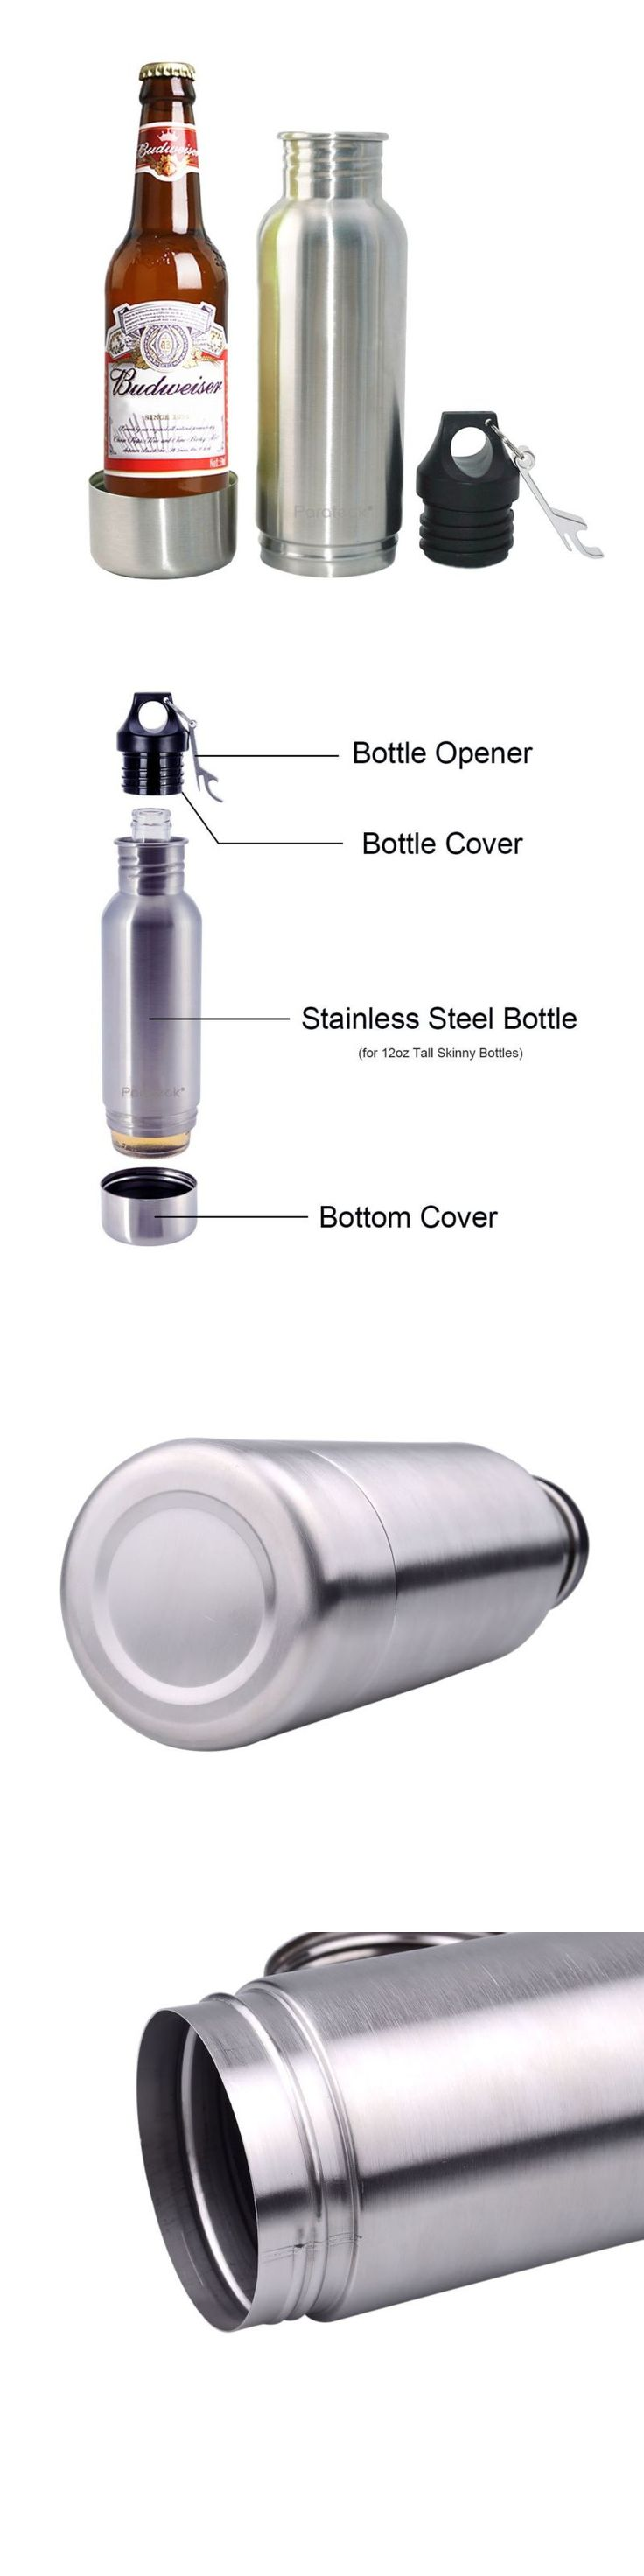 Food And Drink: Bottle Keeper Stainless Steel Soda Beer Holder Beverage Cooler Insulator Thermos -> BUY IT NOW ONLY: $15.2 on eBay!